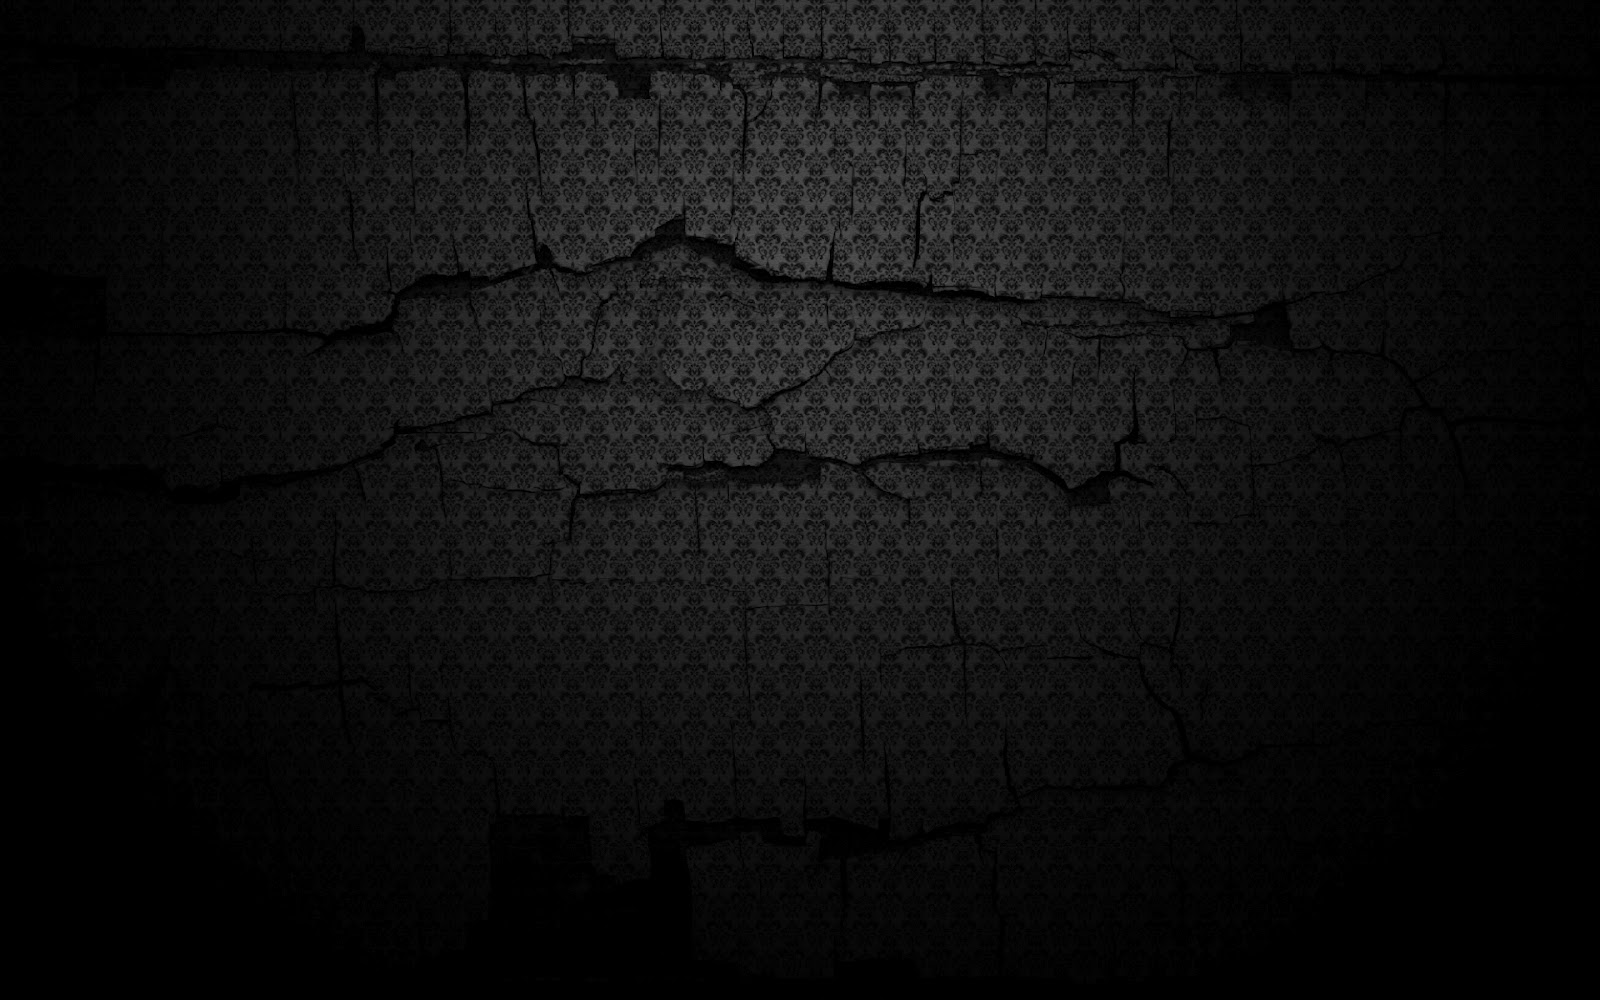 Dark Patterns HD Wallpapers Download Wallpapers in HD for your 1600x1000